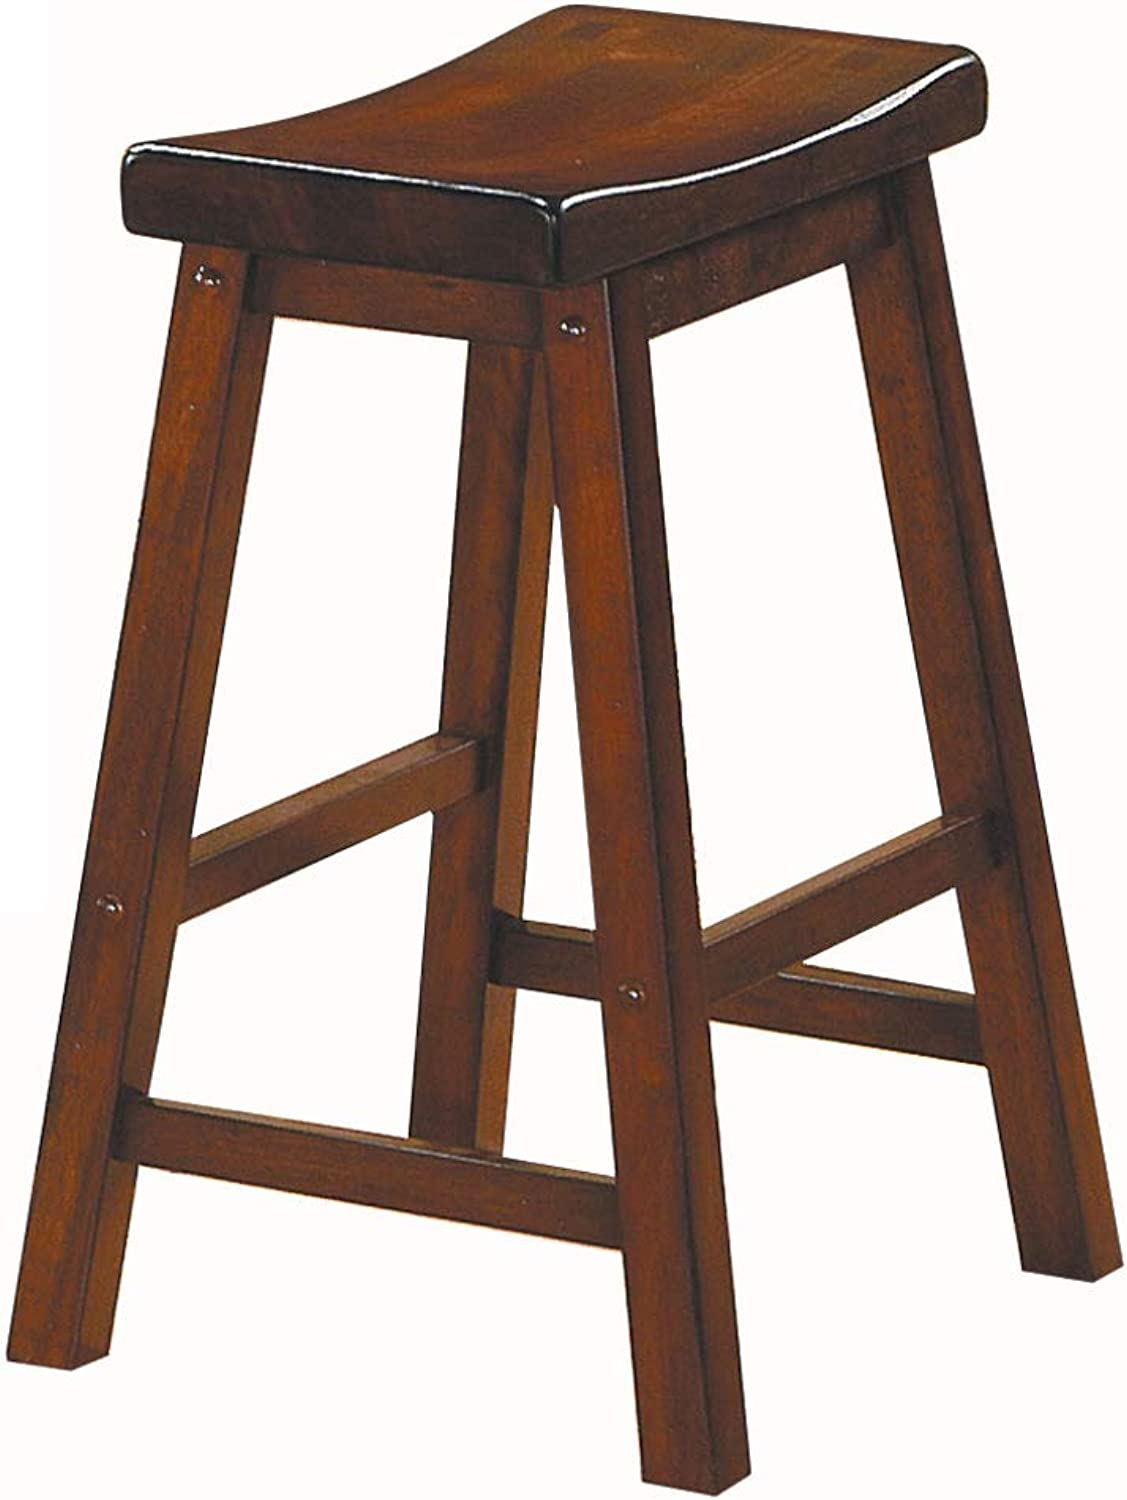 Benzara BM175980 Wooden Counter Height Stool with Saddle Seat, Set of Two, Brown